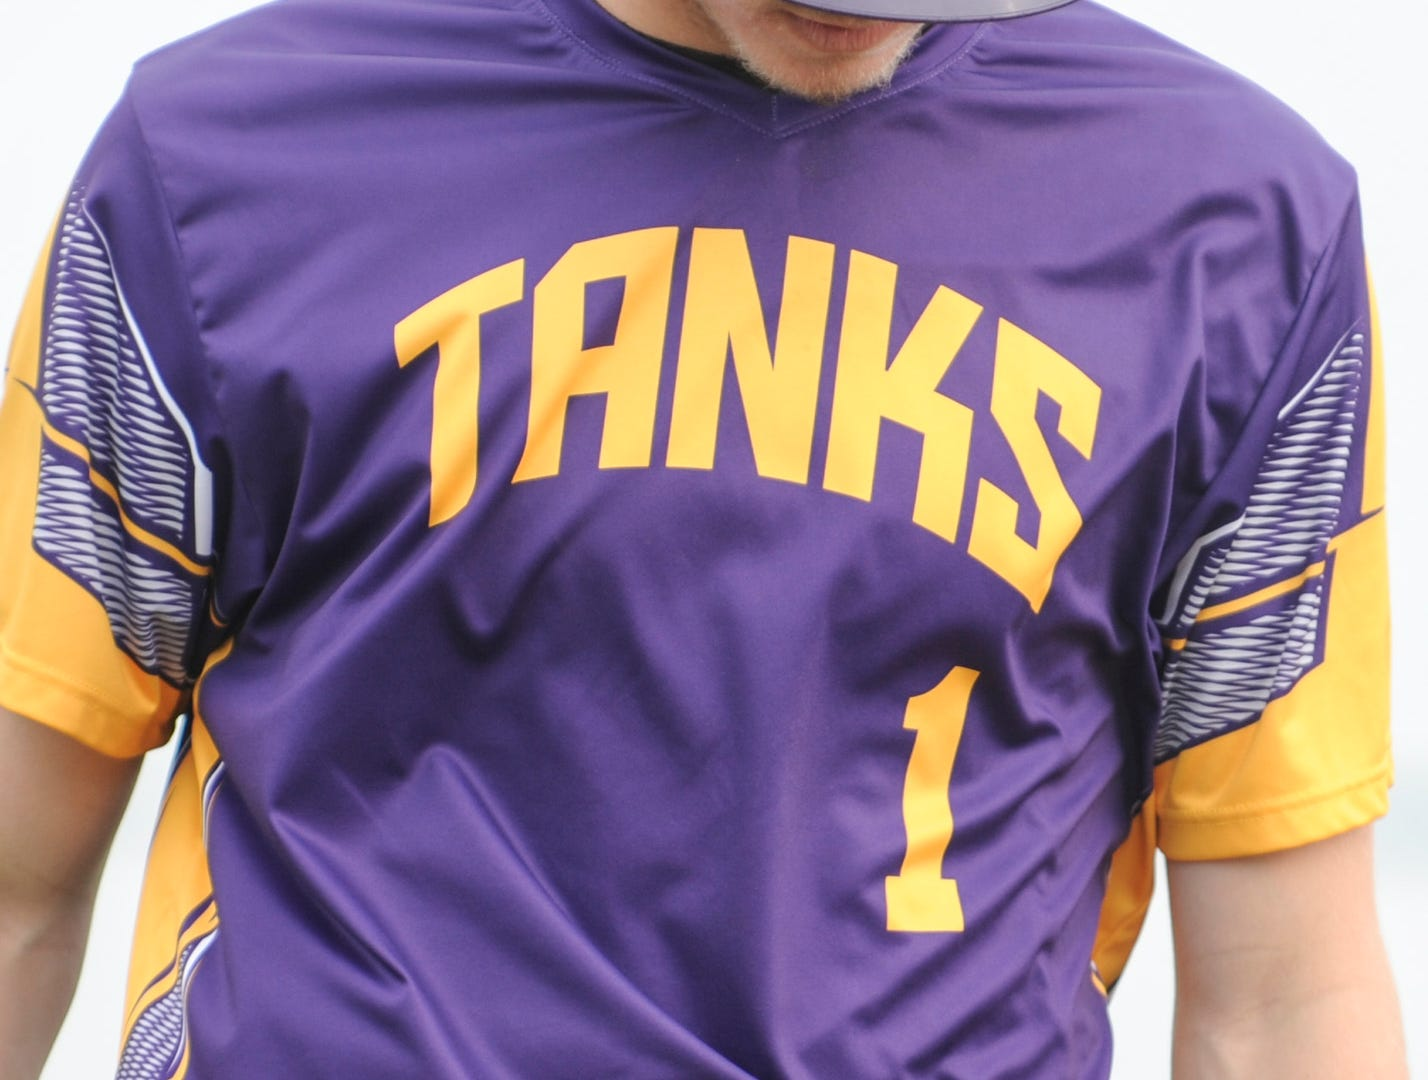 Westfall defeated Unioto 2-0 Wednesday night at Unioto High School in Chillicothe, Ohio, leaving Unioto, Westfall, and Zane Trace in a three-way tie for the top of the SVC.